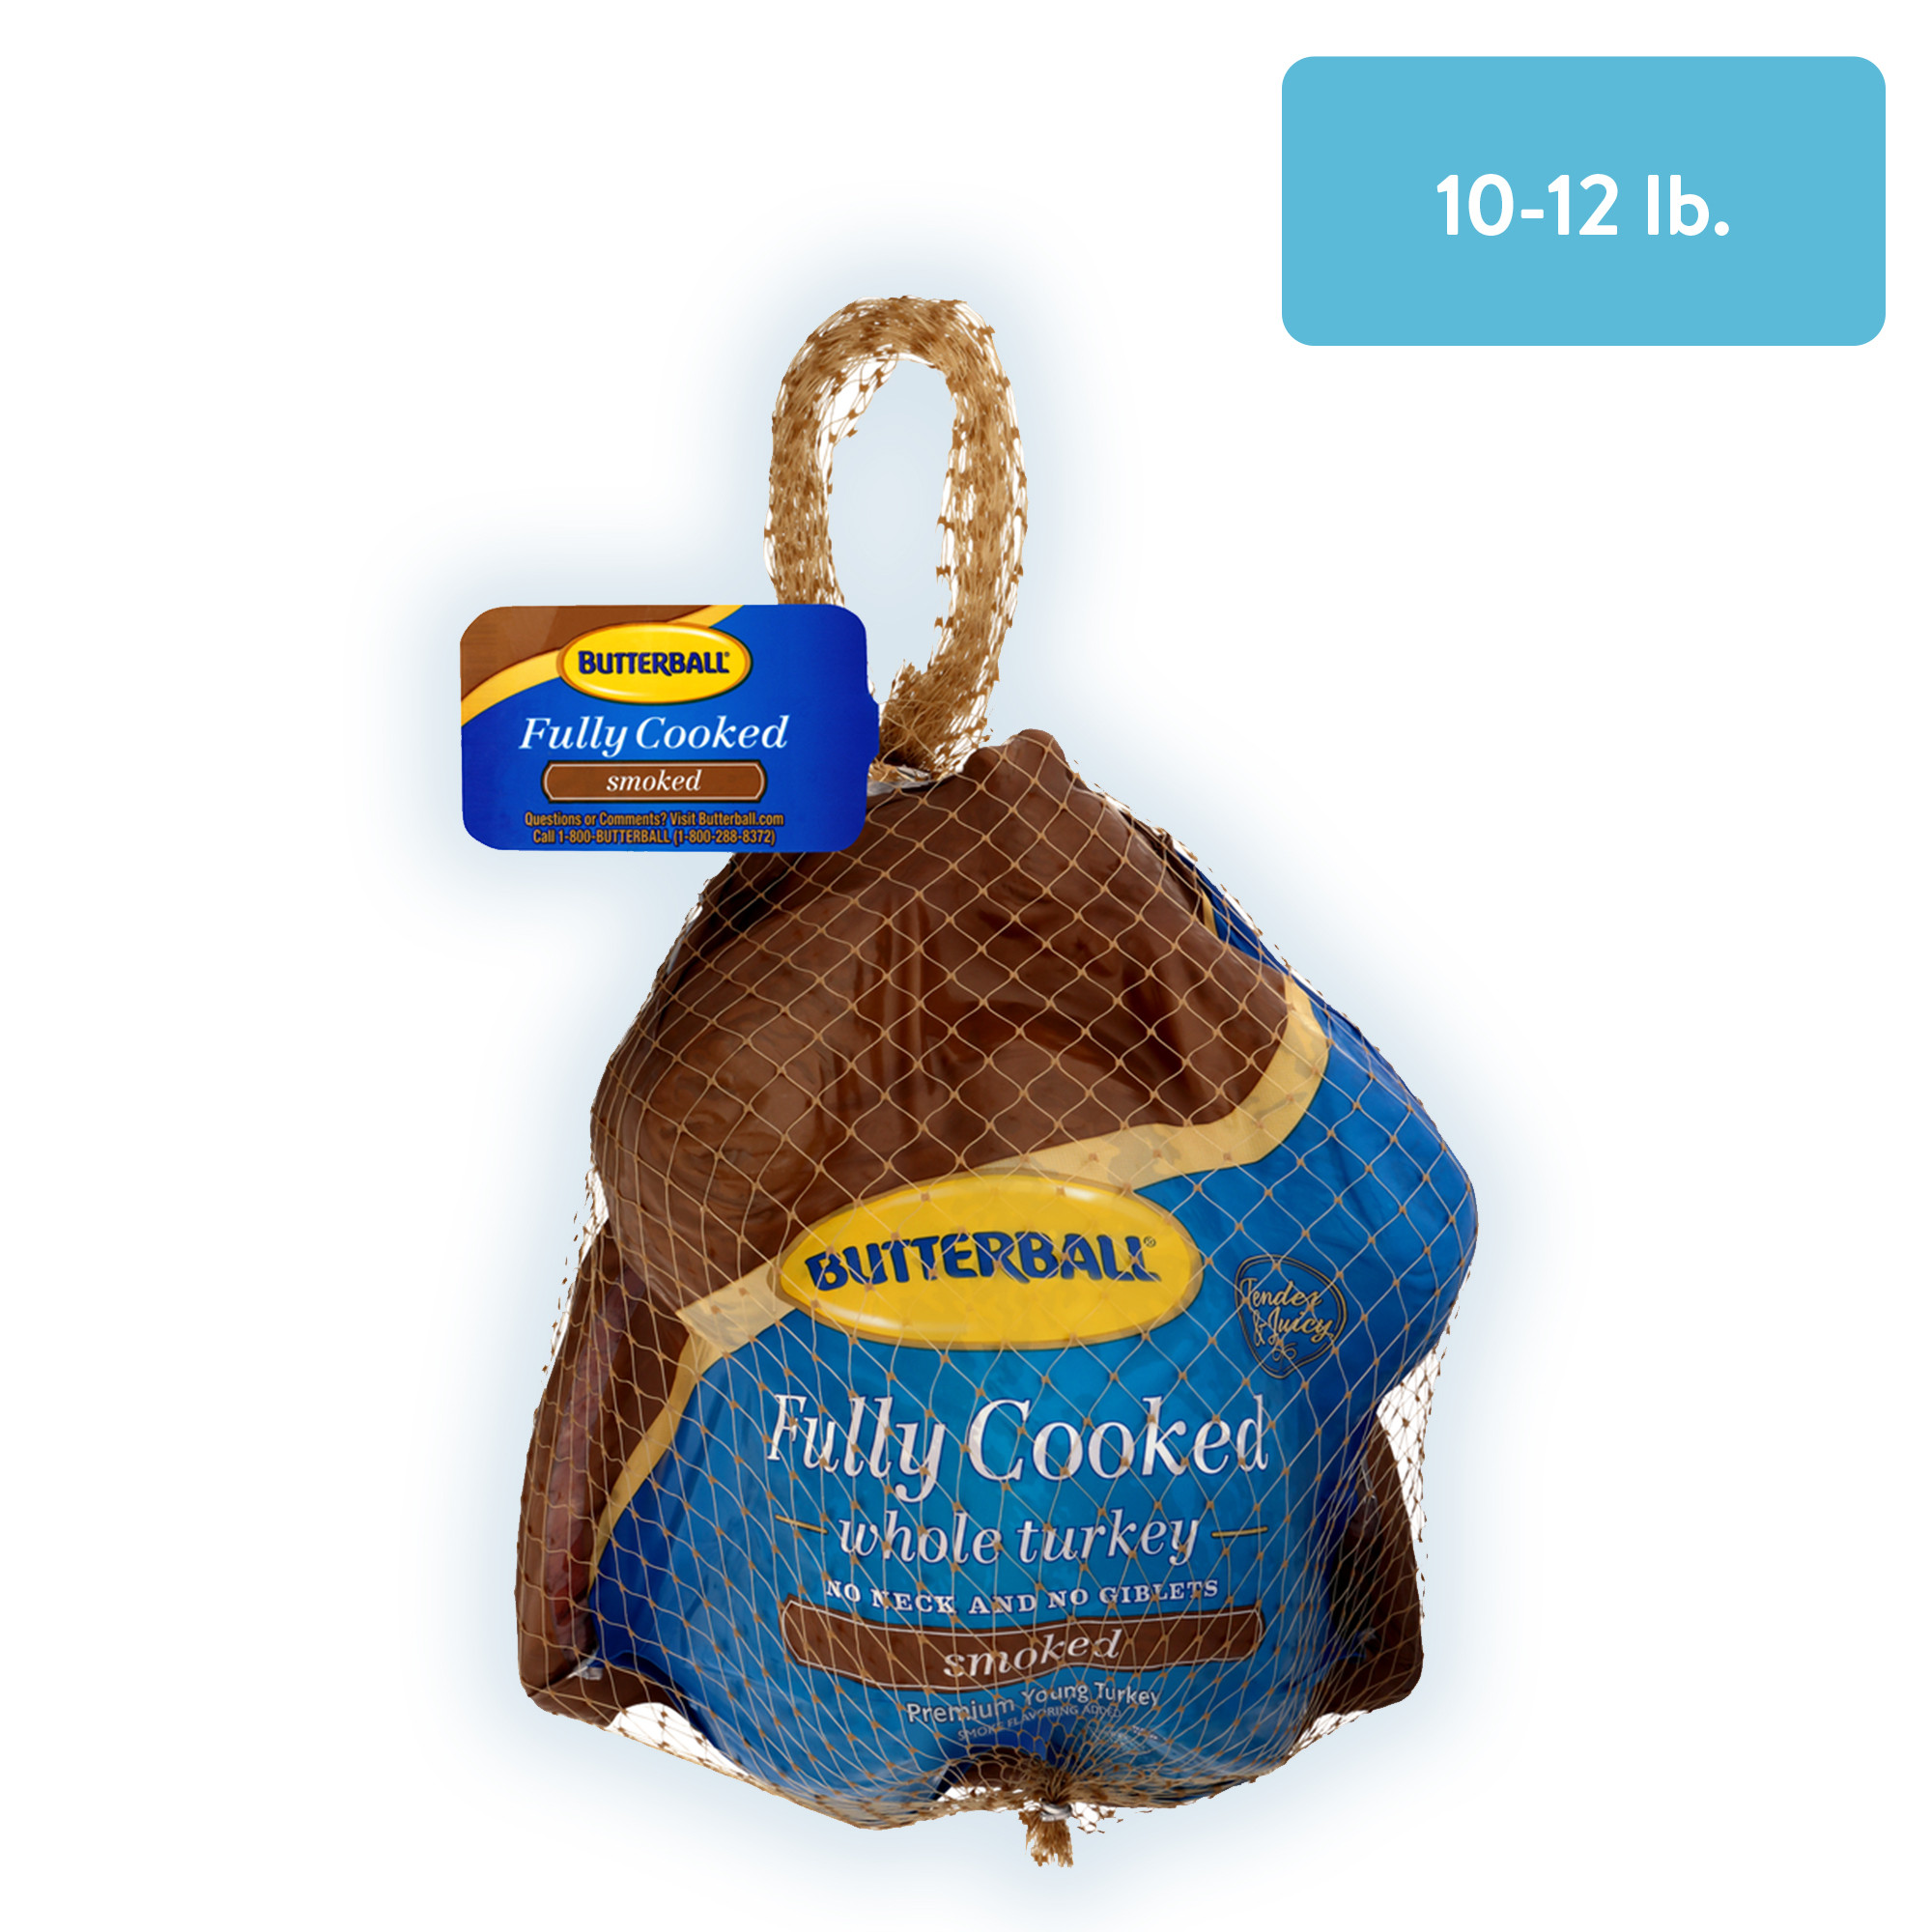 Pre Cooked Thanksgiving Dinner Walmart 2020  Butterball Smoked Fully Cooked Turkey Gluten free 10 12